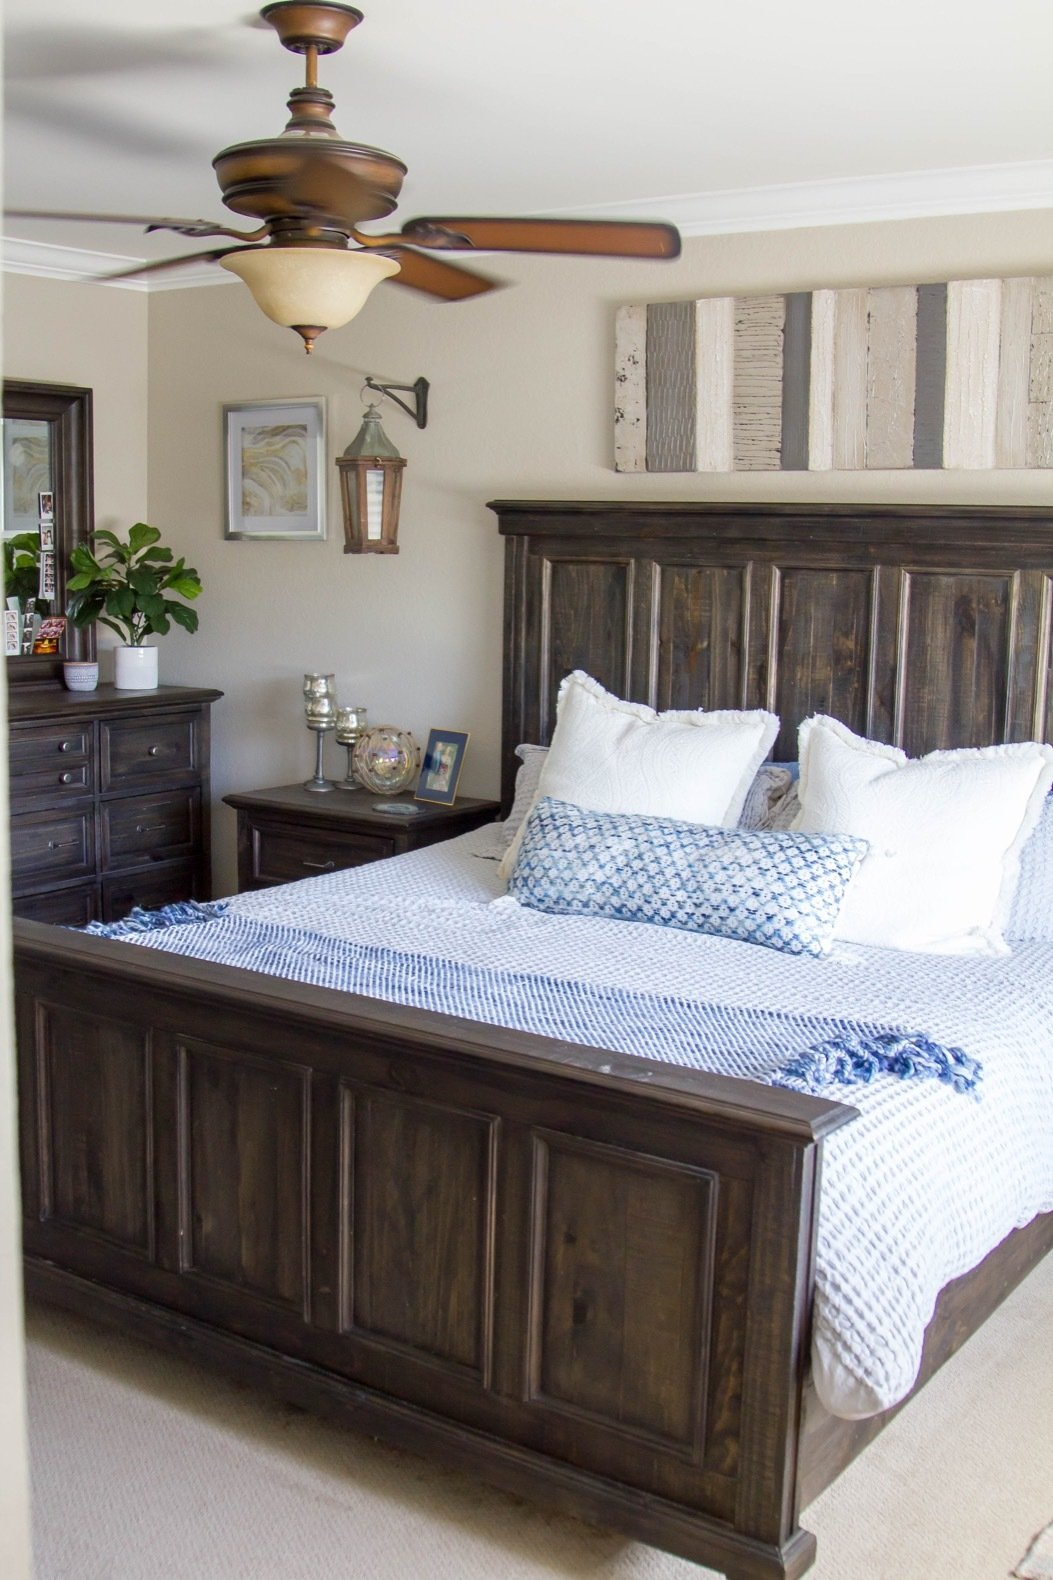 Bedroom, Night Stands, Ceiling Lighting, Dresser, Carpet Floor, and Bed The popcorn ceiling was replaced, textured, and painted while new base boards and crown moulding were put in. New paint, windows, and carpet modernize the room.  Best Photos from Budget Breakdown: A SoCal Couple Revamp Their Fixer-Upper For $63K